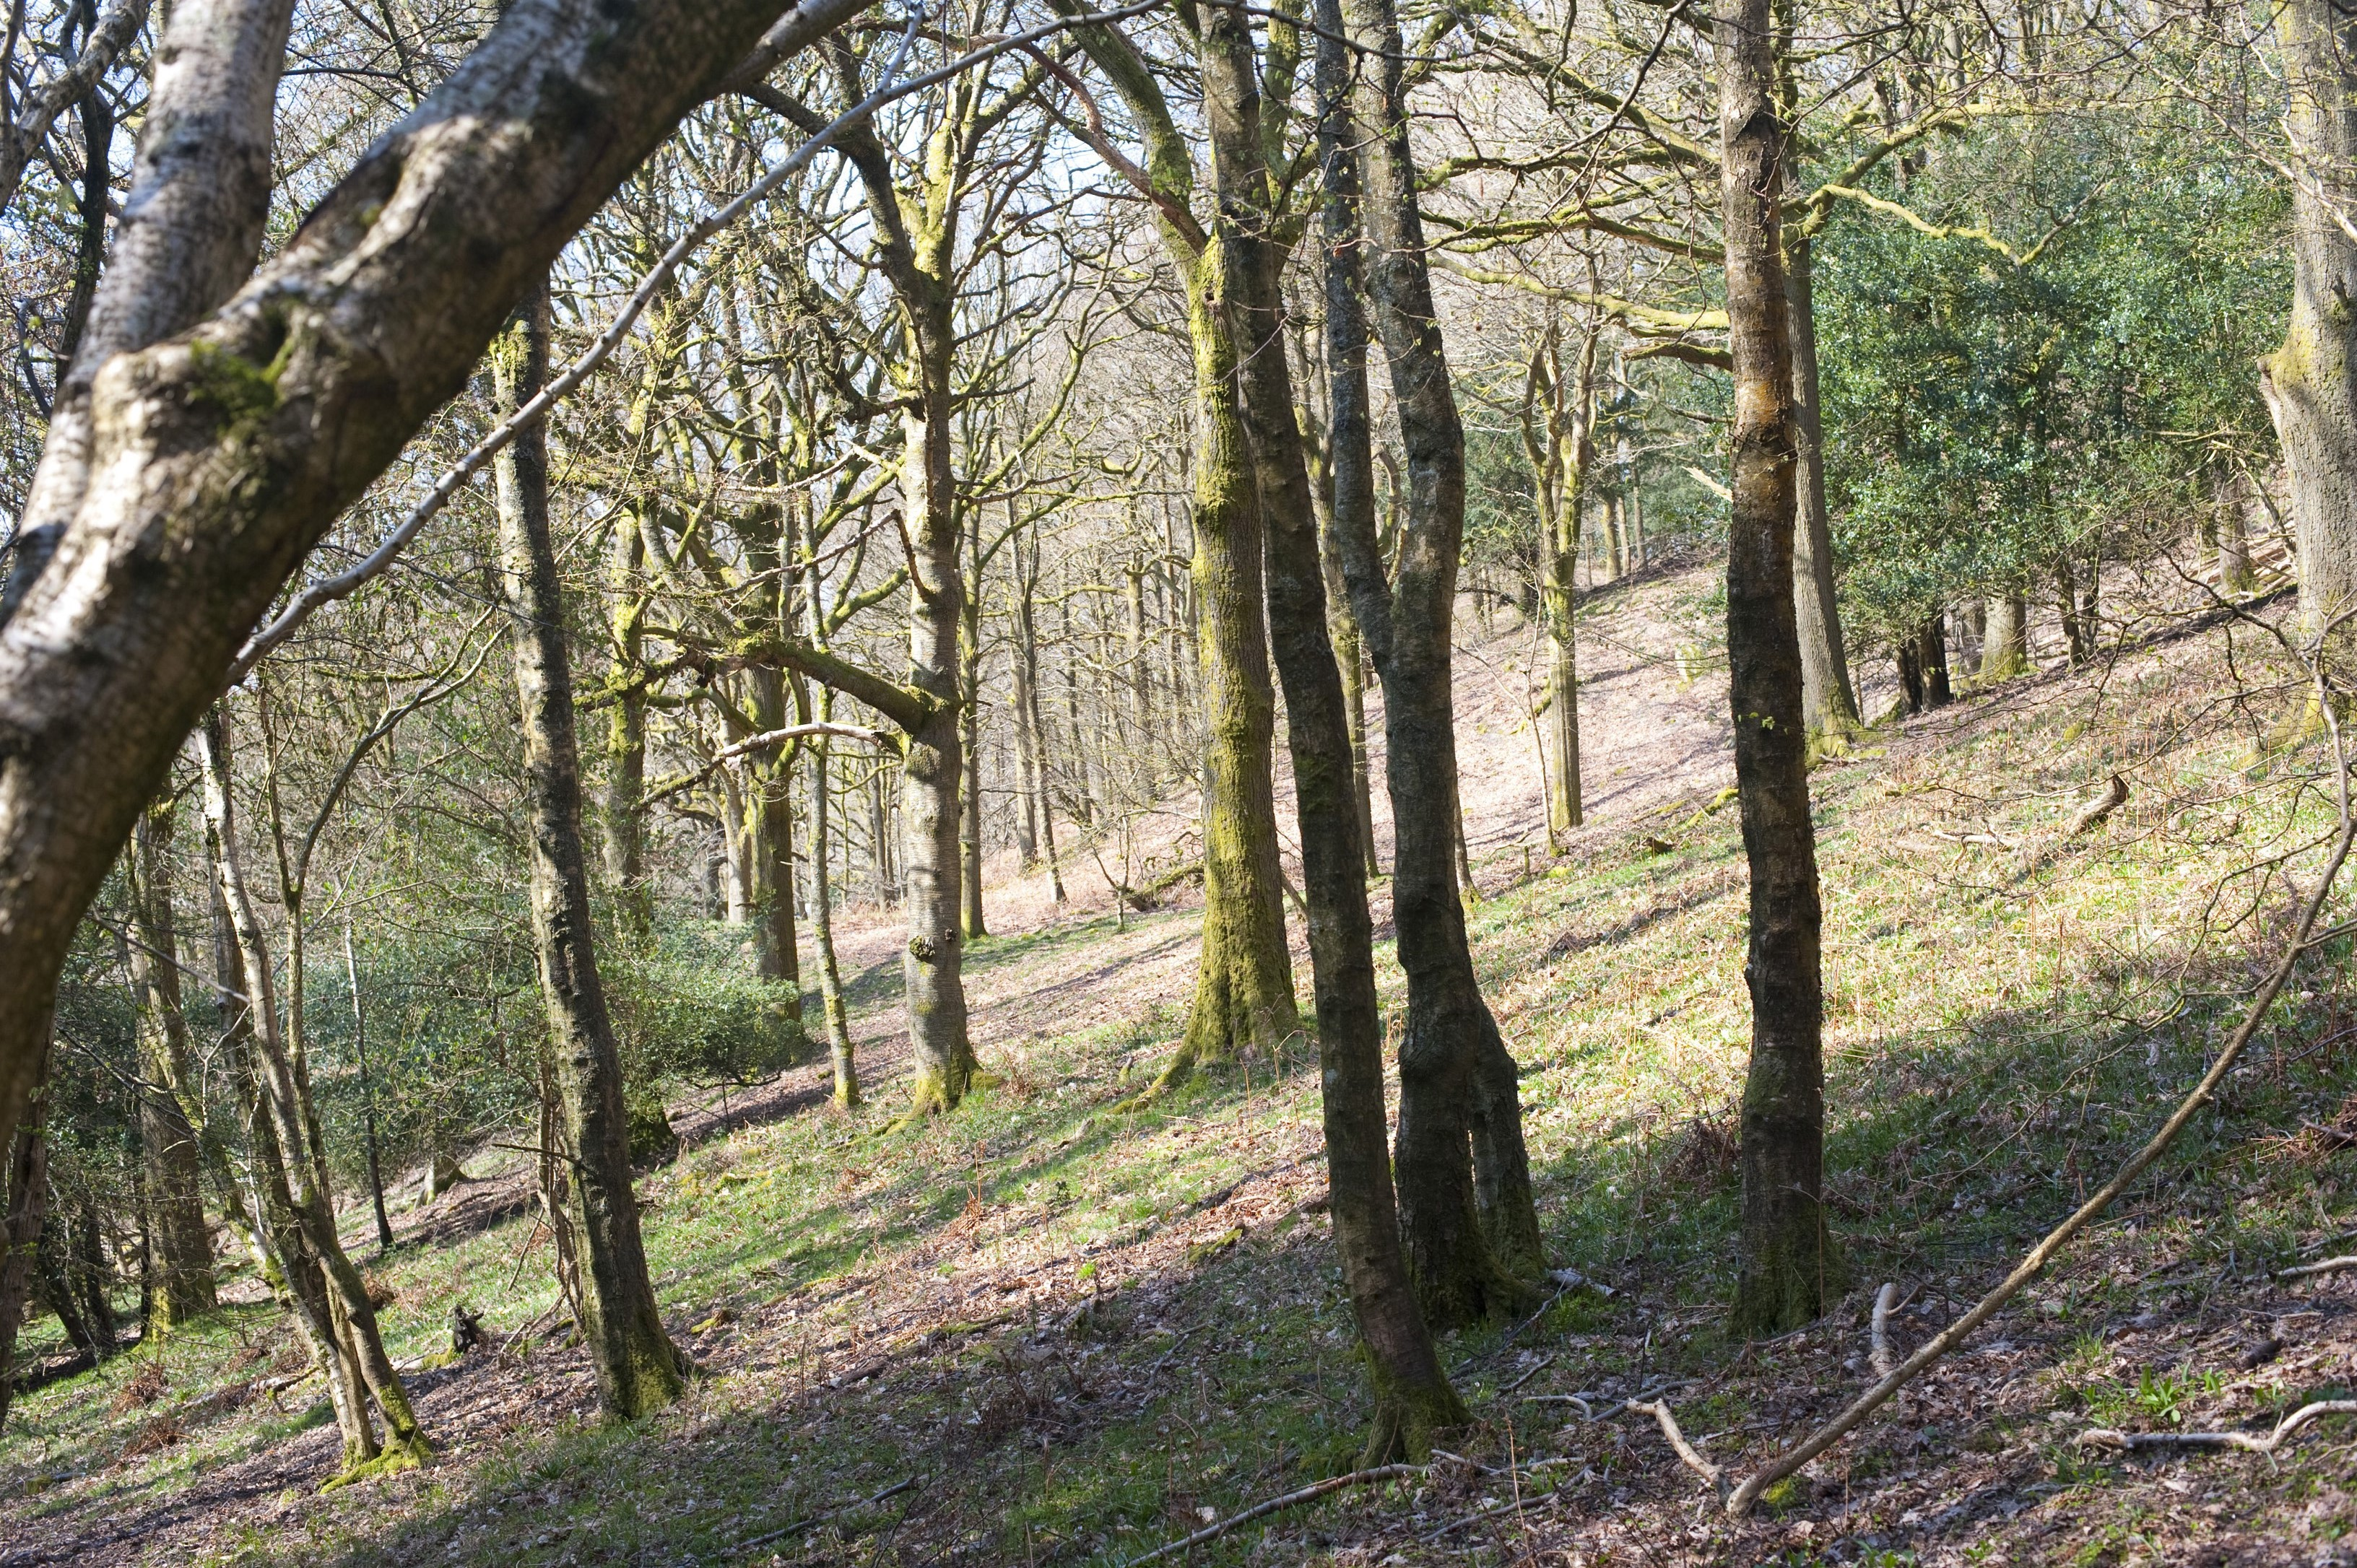 Glade of trees in woodland growing on a gentle hillside, viewed through the trunks